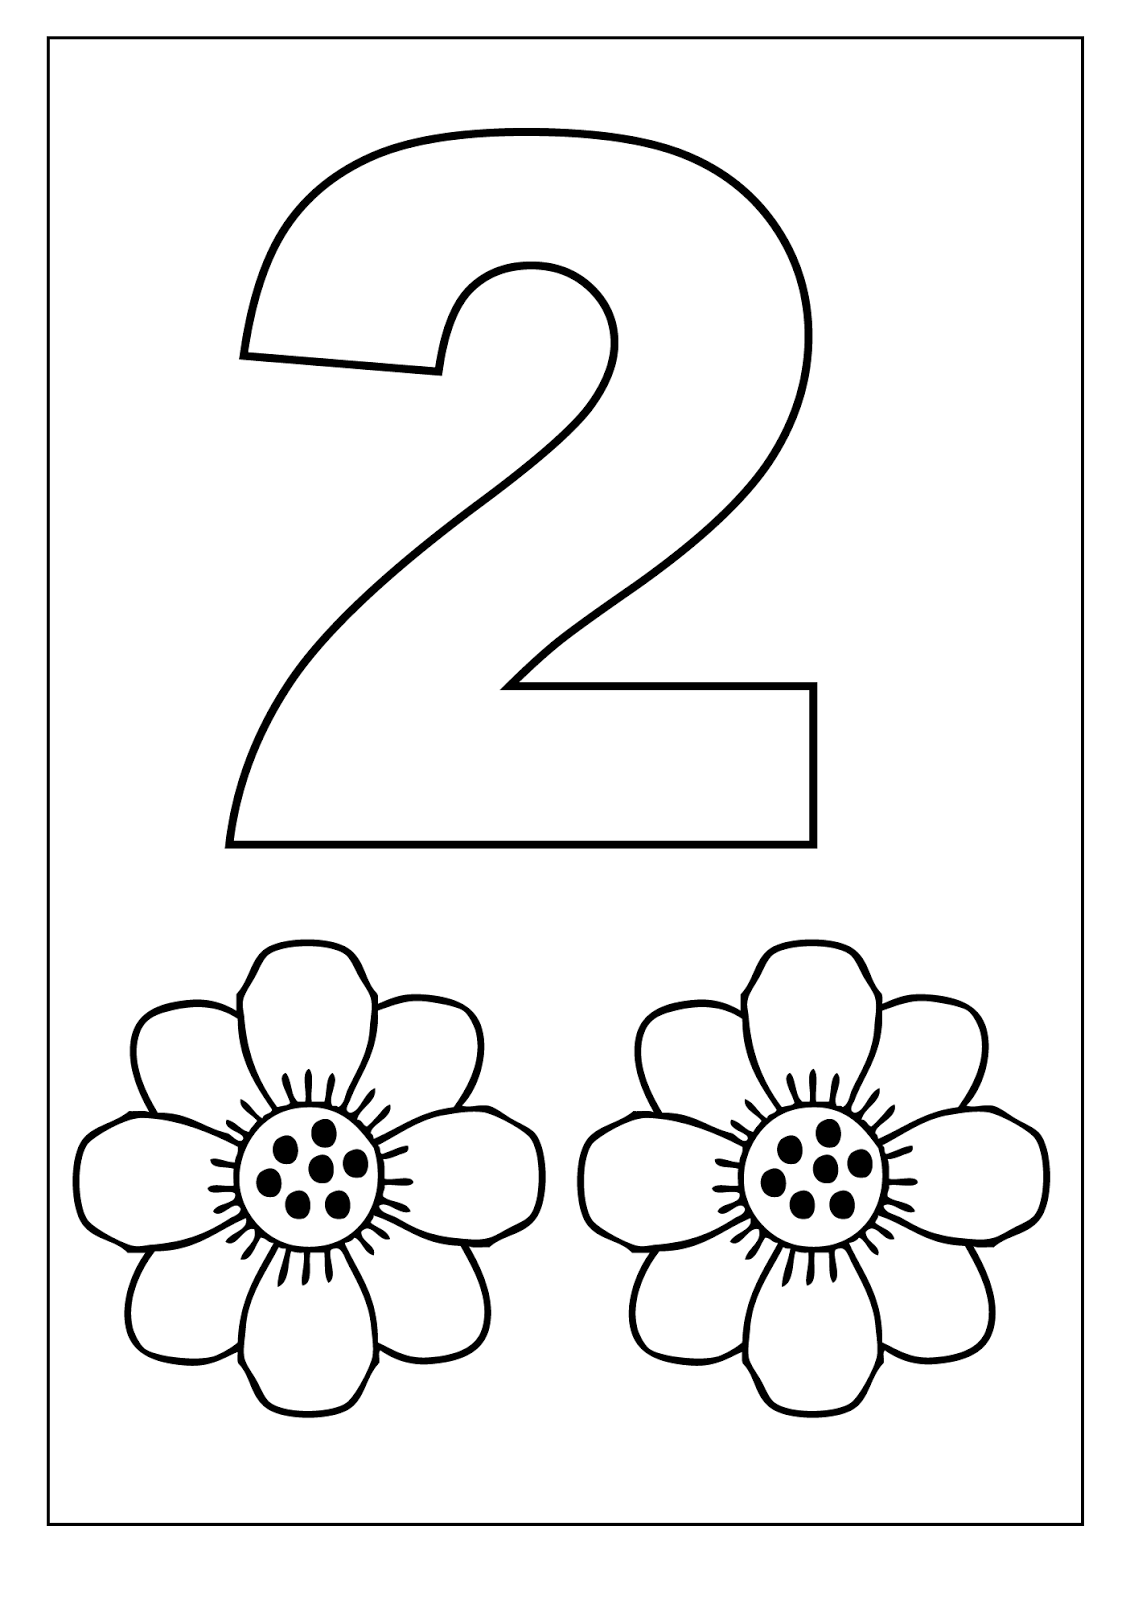 Coloring Pages 5 Year Olds